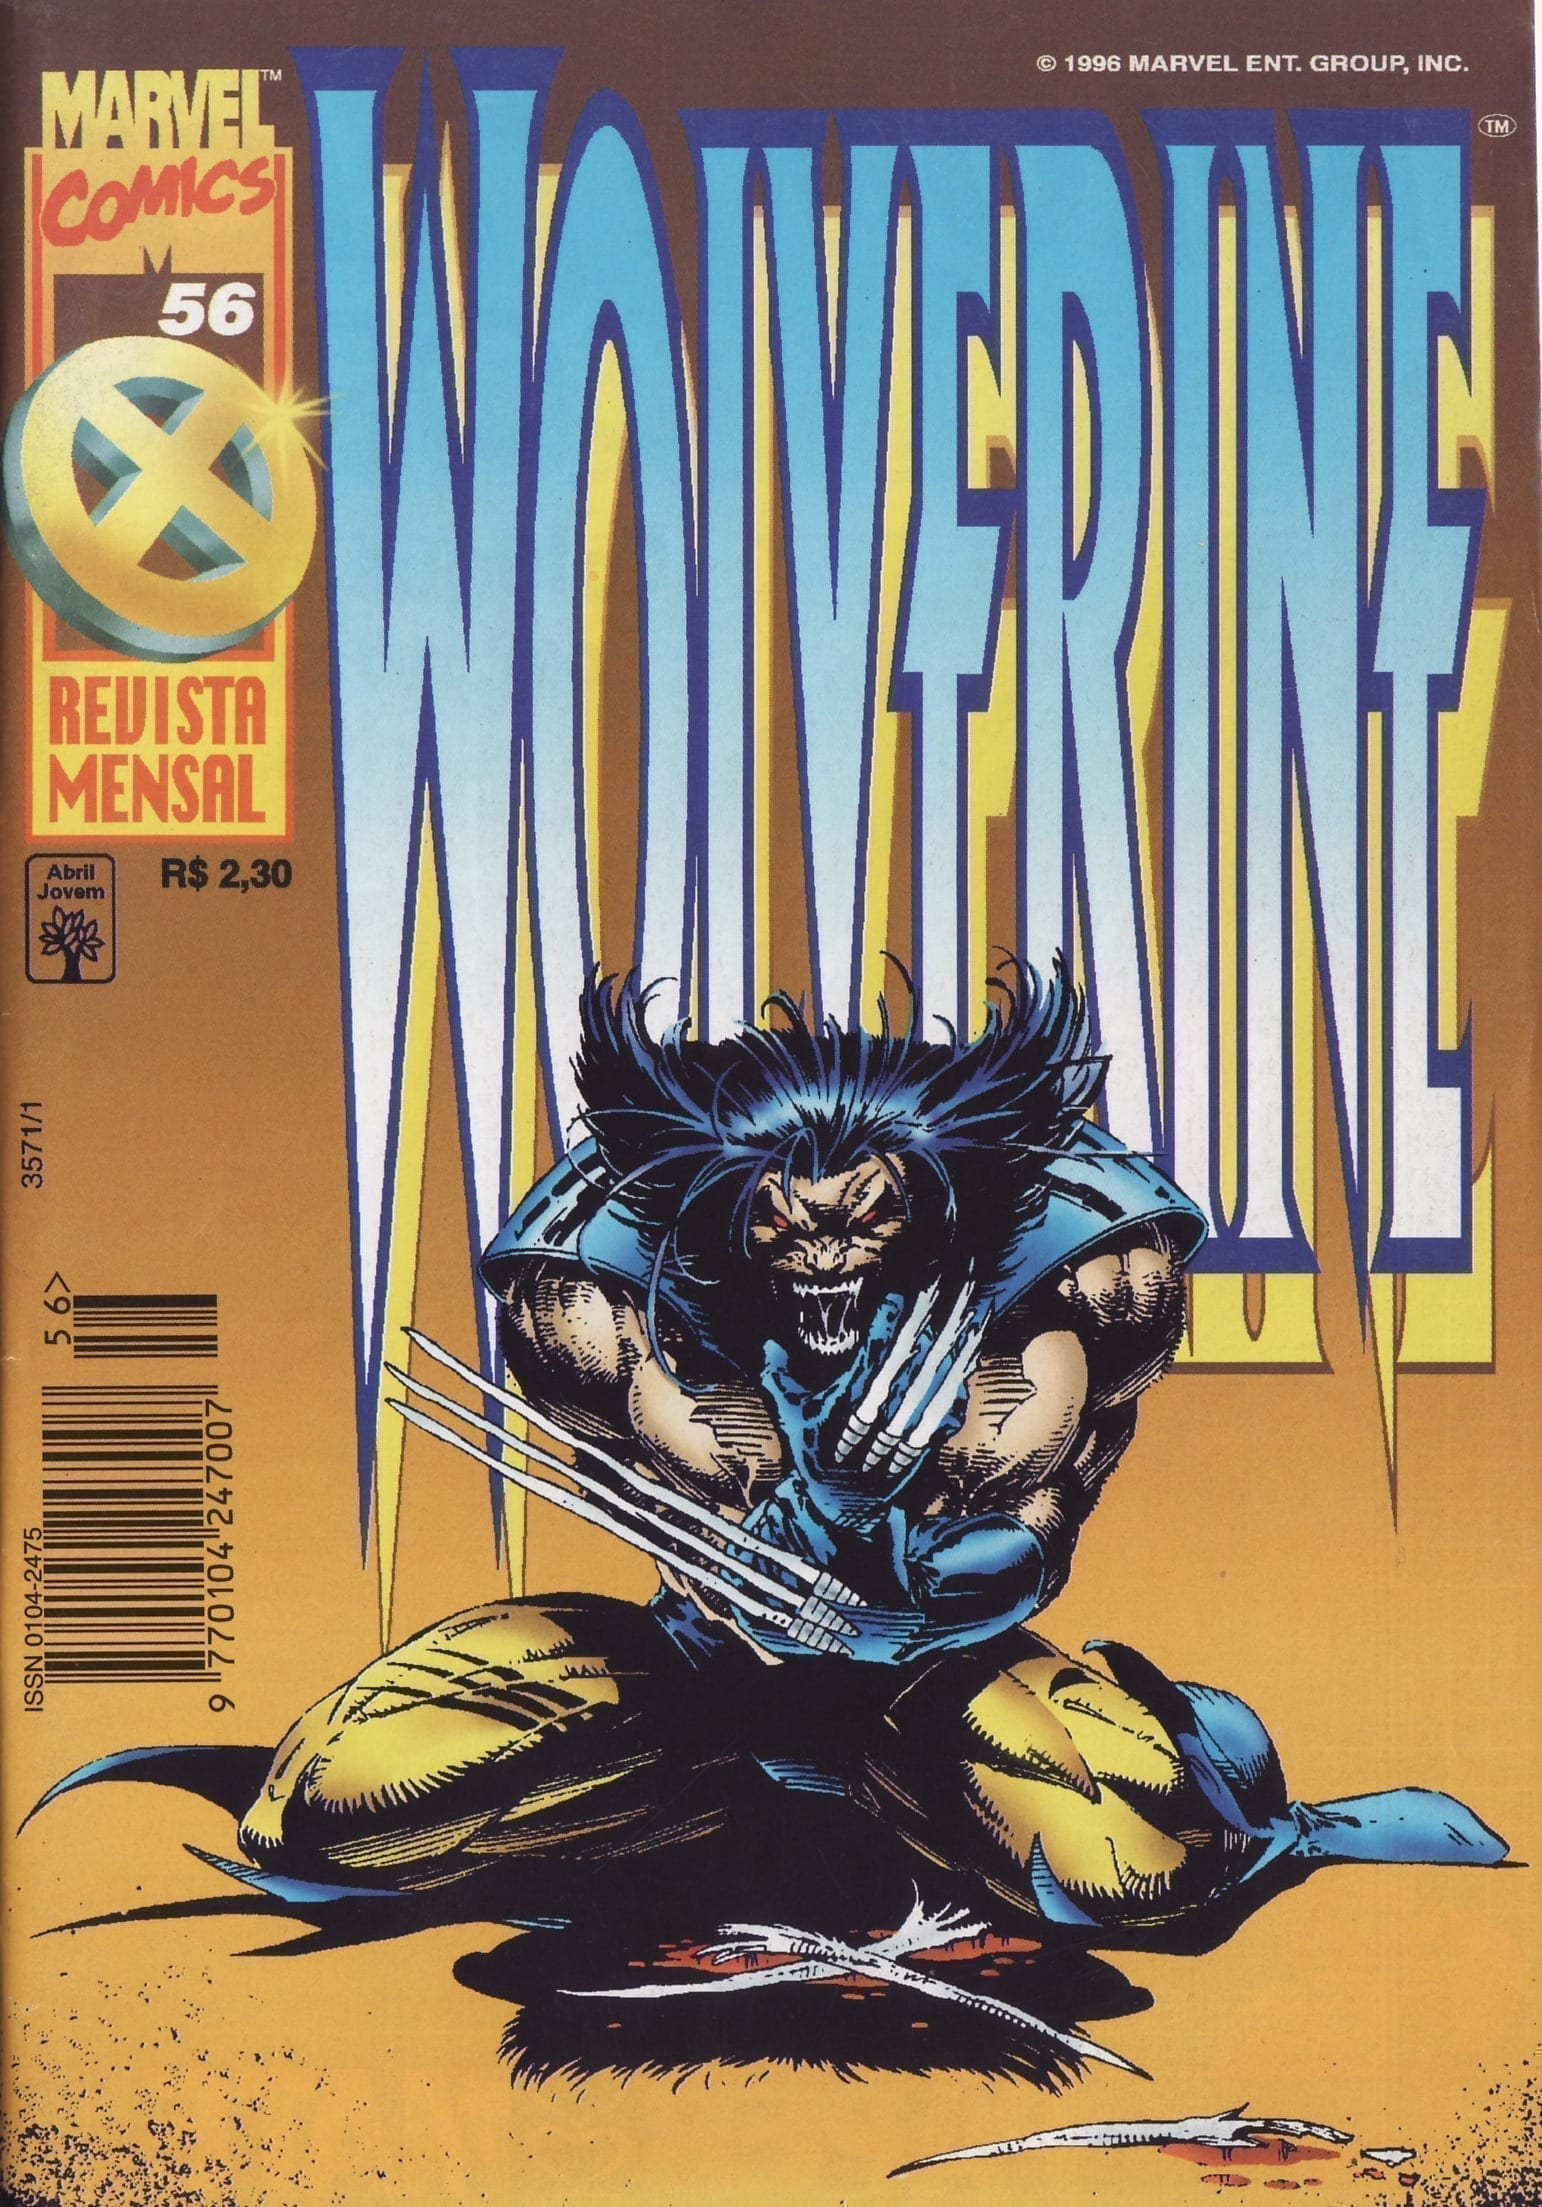 Capa: Wolverine Abril 56